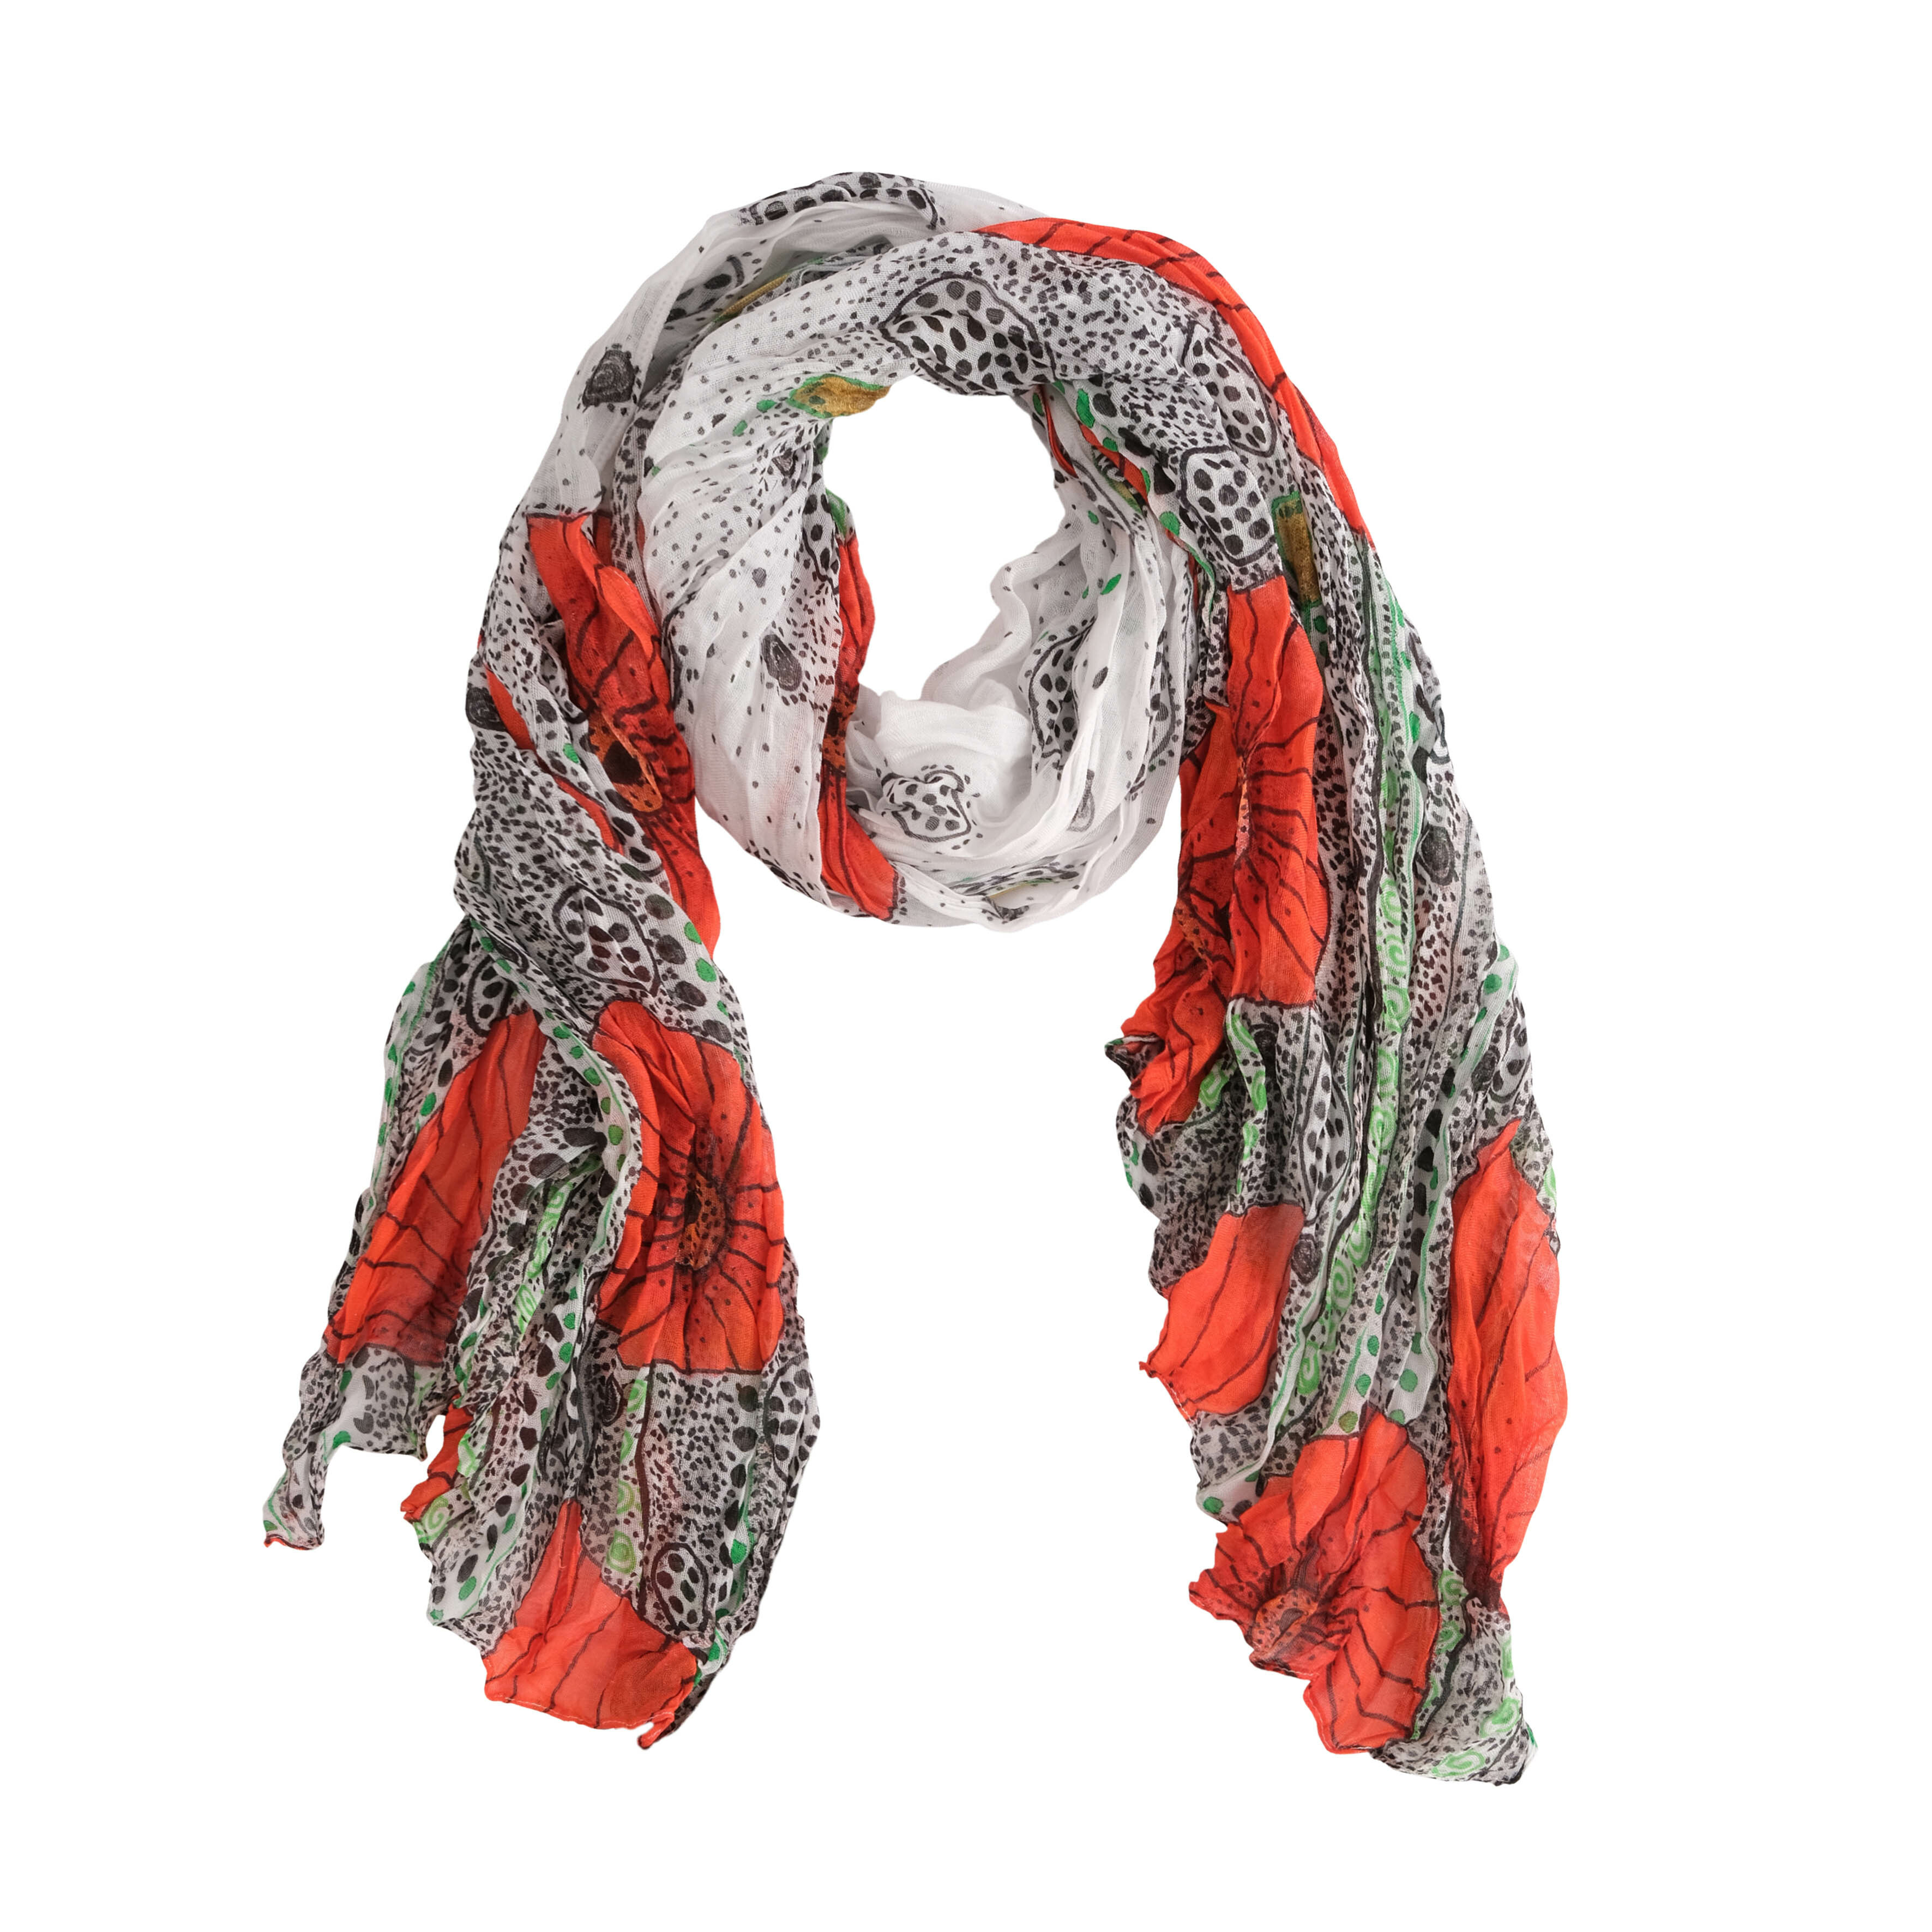 Dolcezza Spring/Summer 2020: Simply Art Scarves (Most Ship Immed, Many Art Styles!)